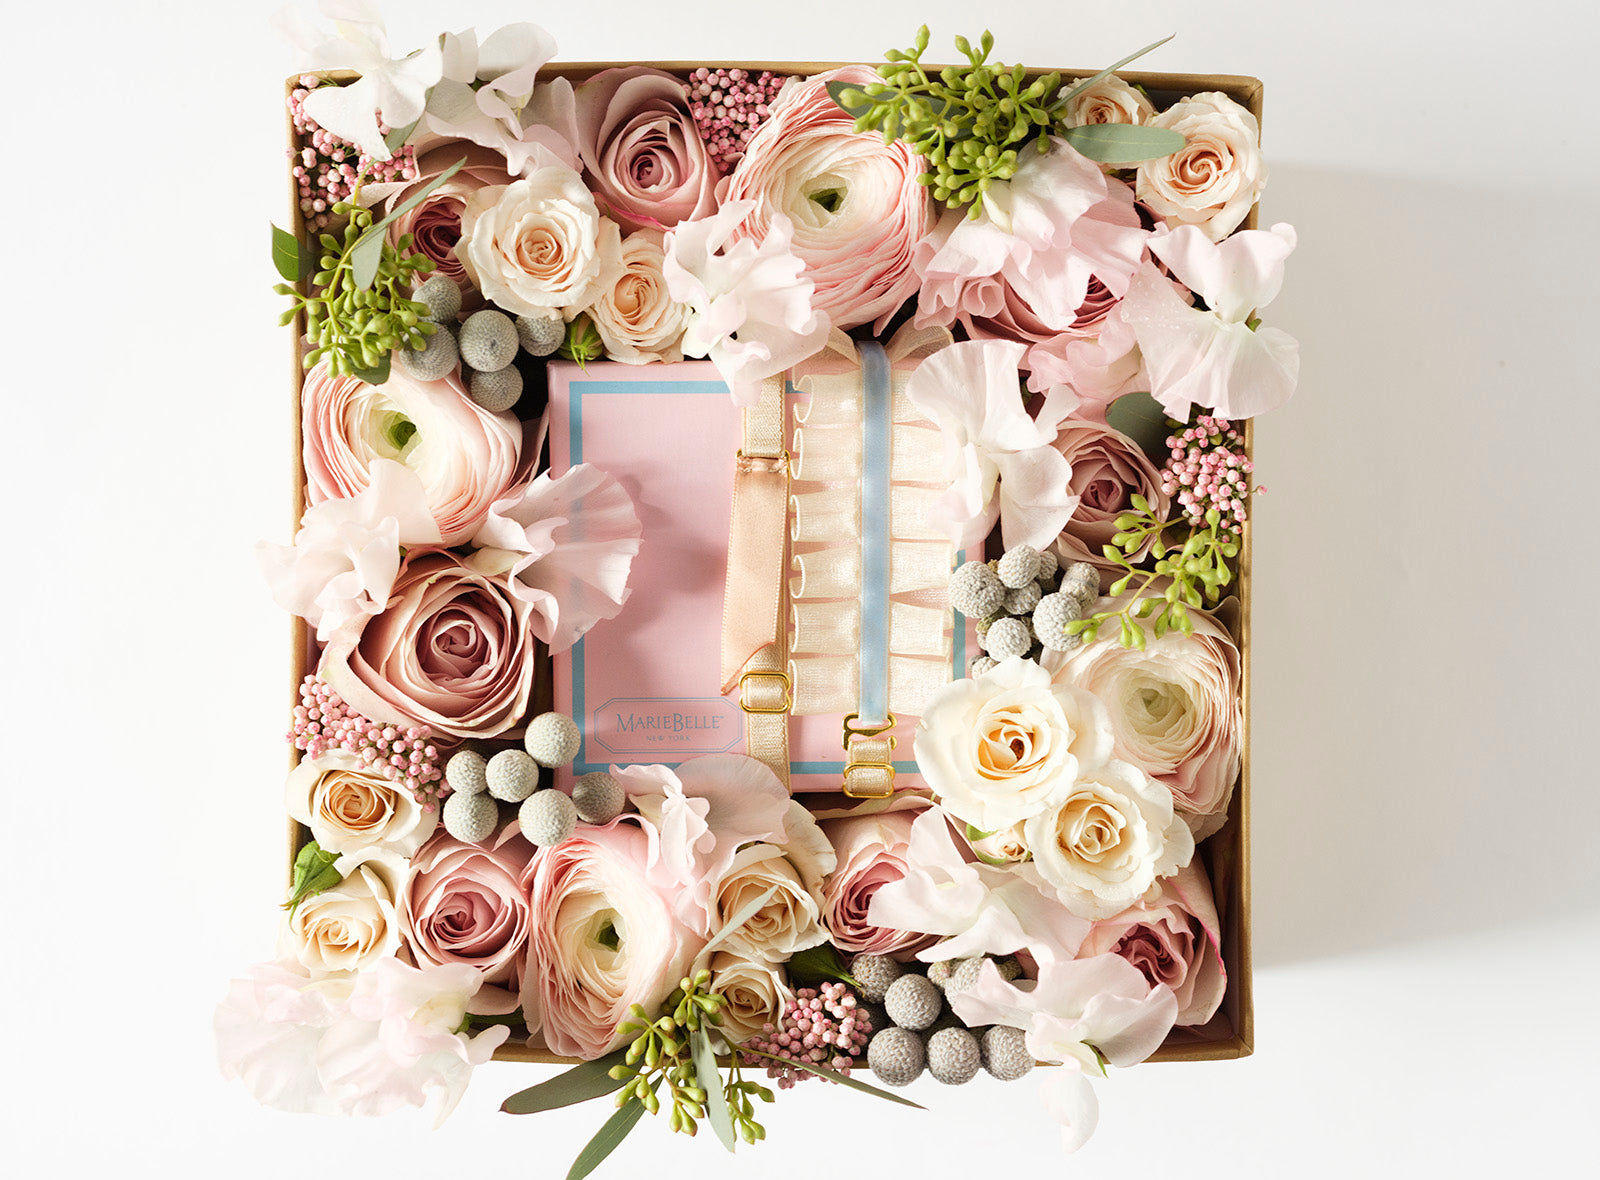 Rosé - Flower Box with Marie Belle Chocolates - Élan Flowers